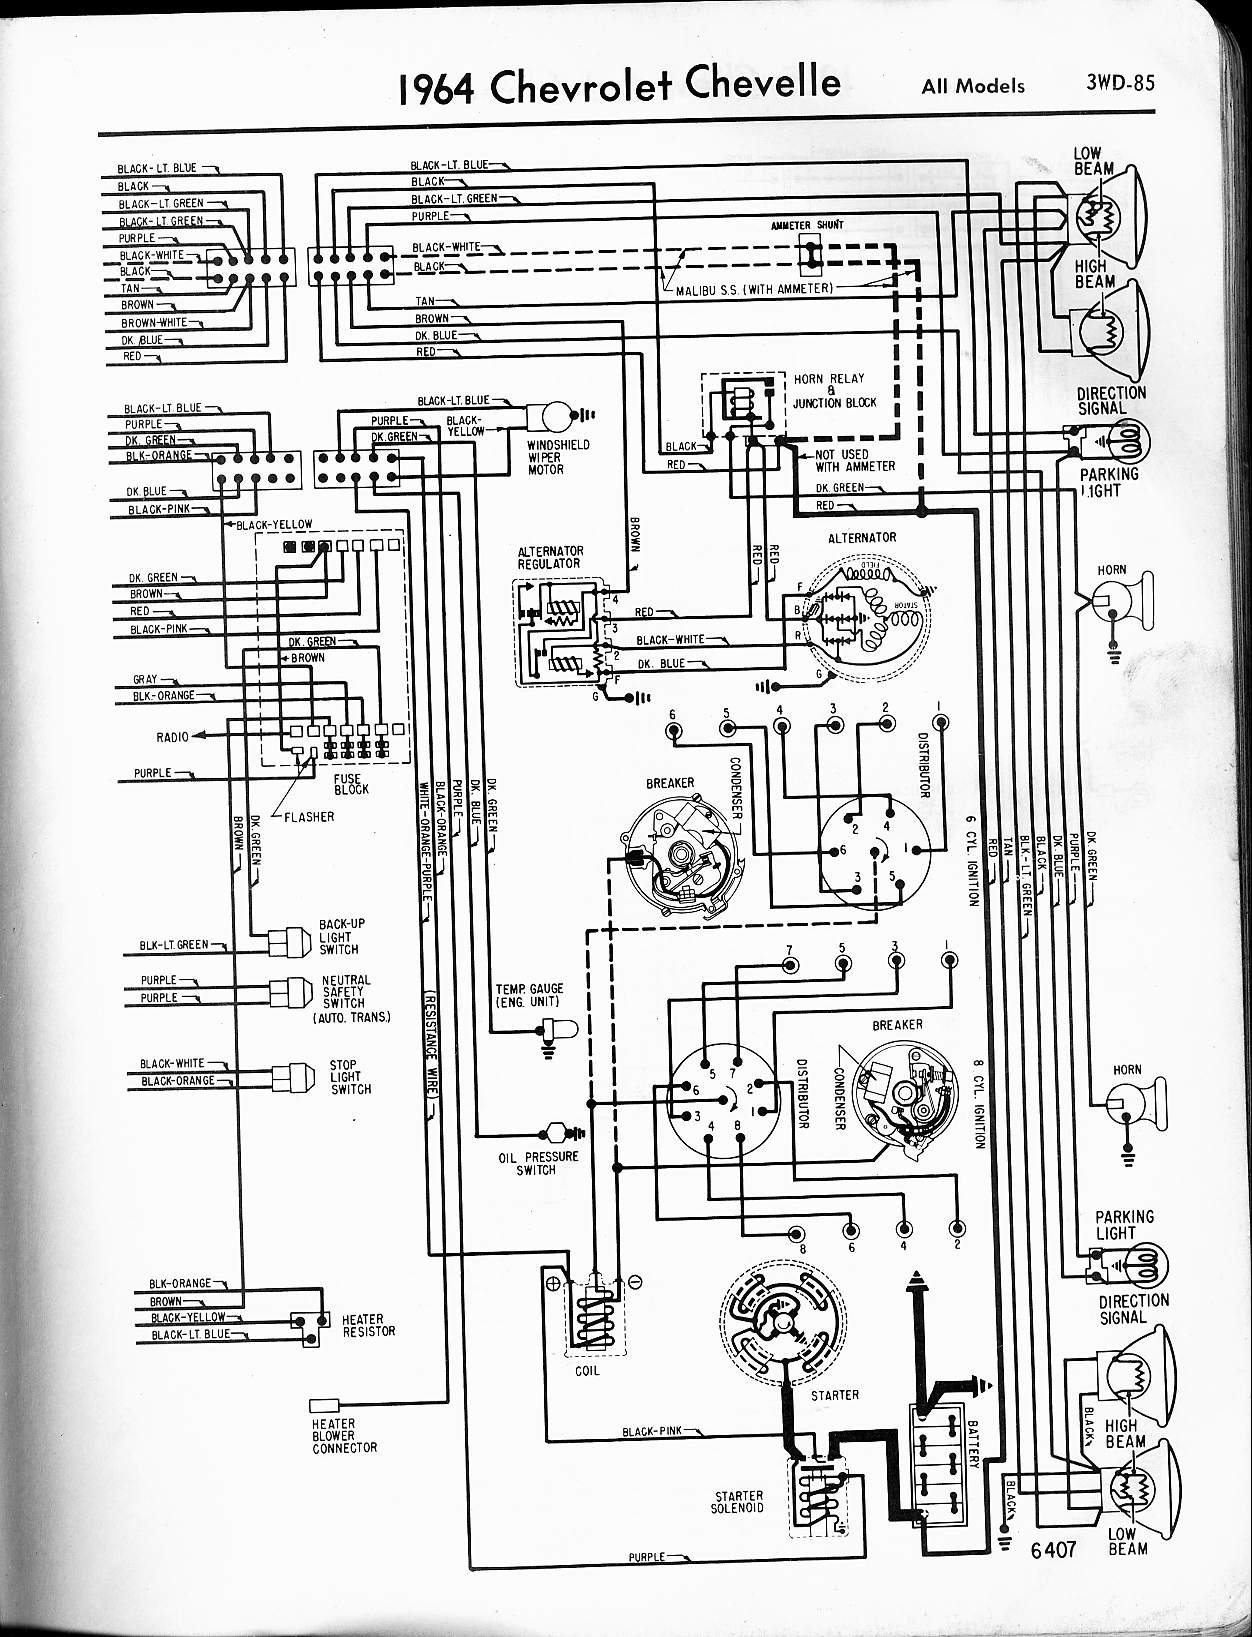 1965 Chevelle Wiring Diagram Data Wiring Schema Corvair 4 Speed Diagram 66  Corvair Wiring Diagram